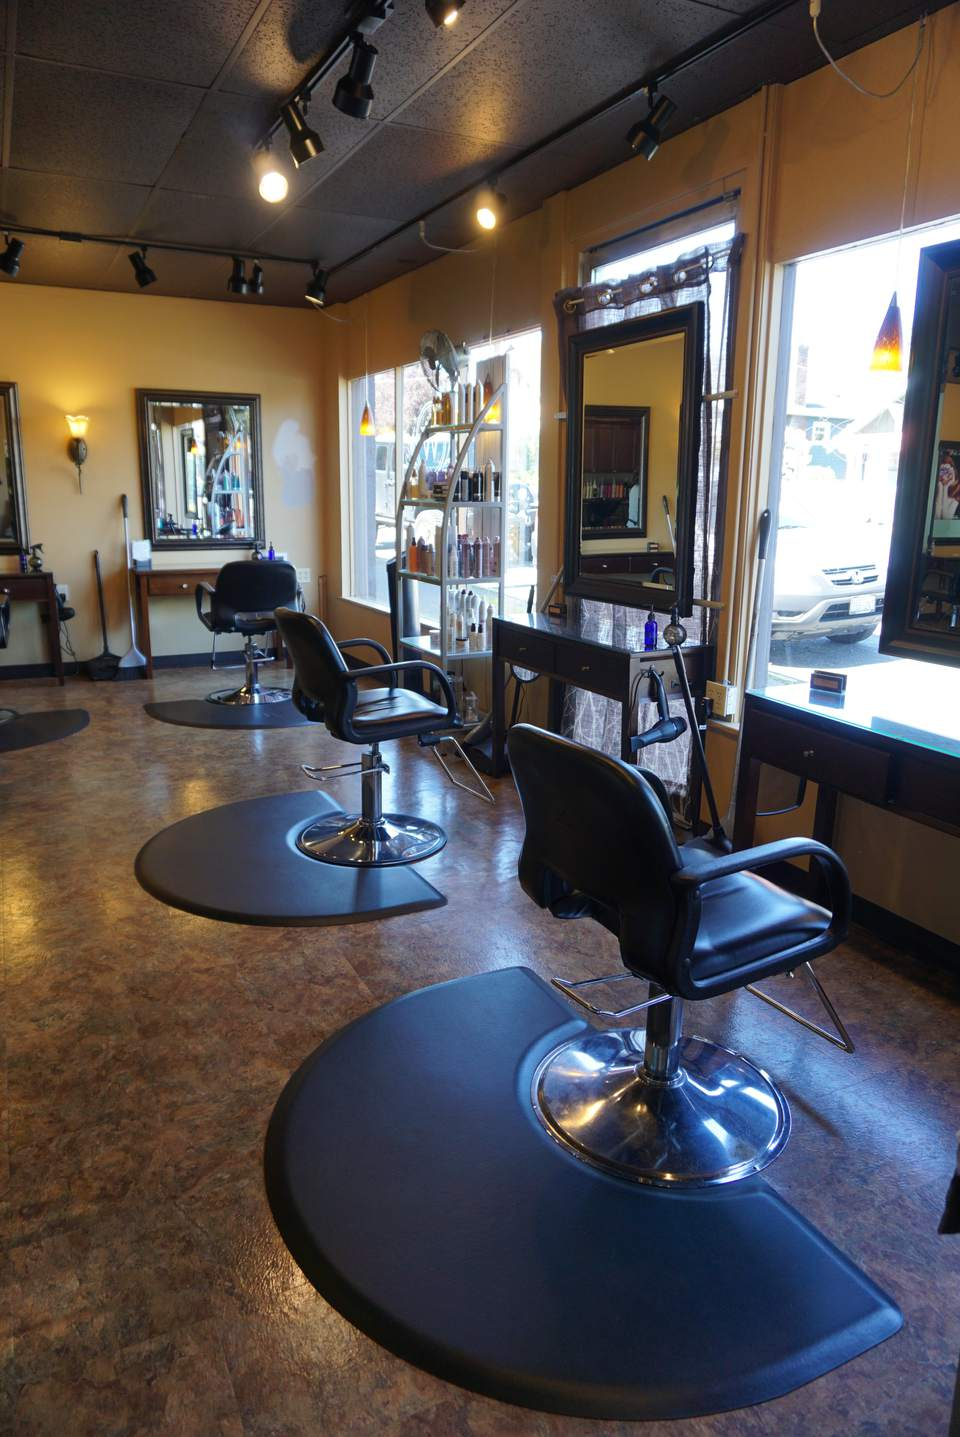 Willow Salon and Spa in Tacoma